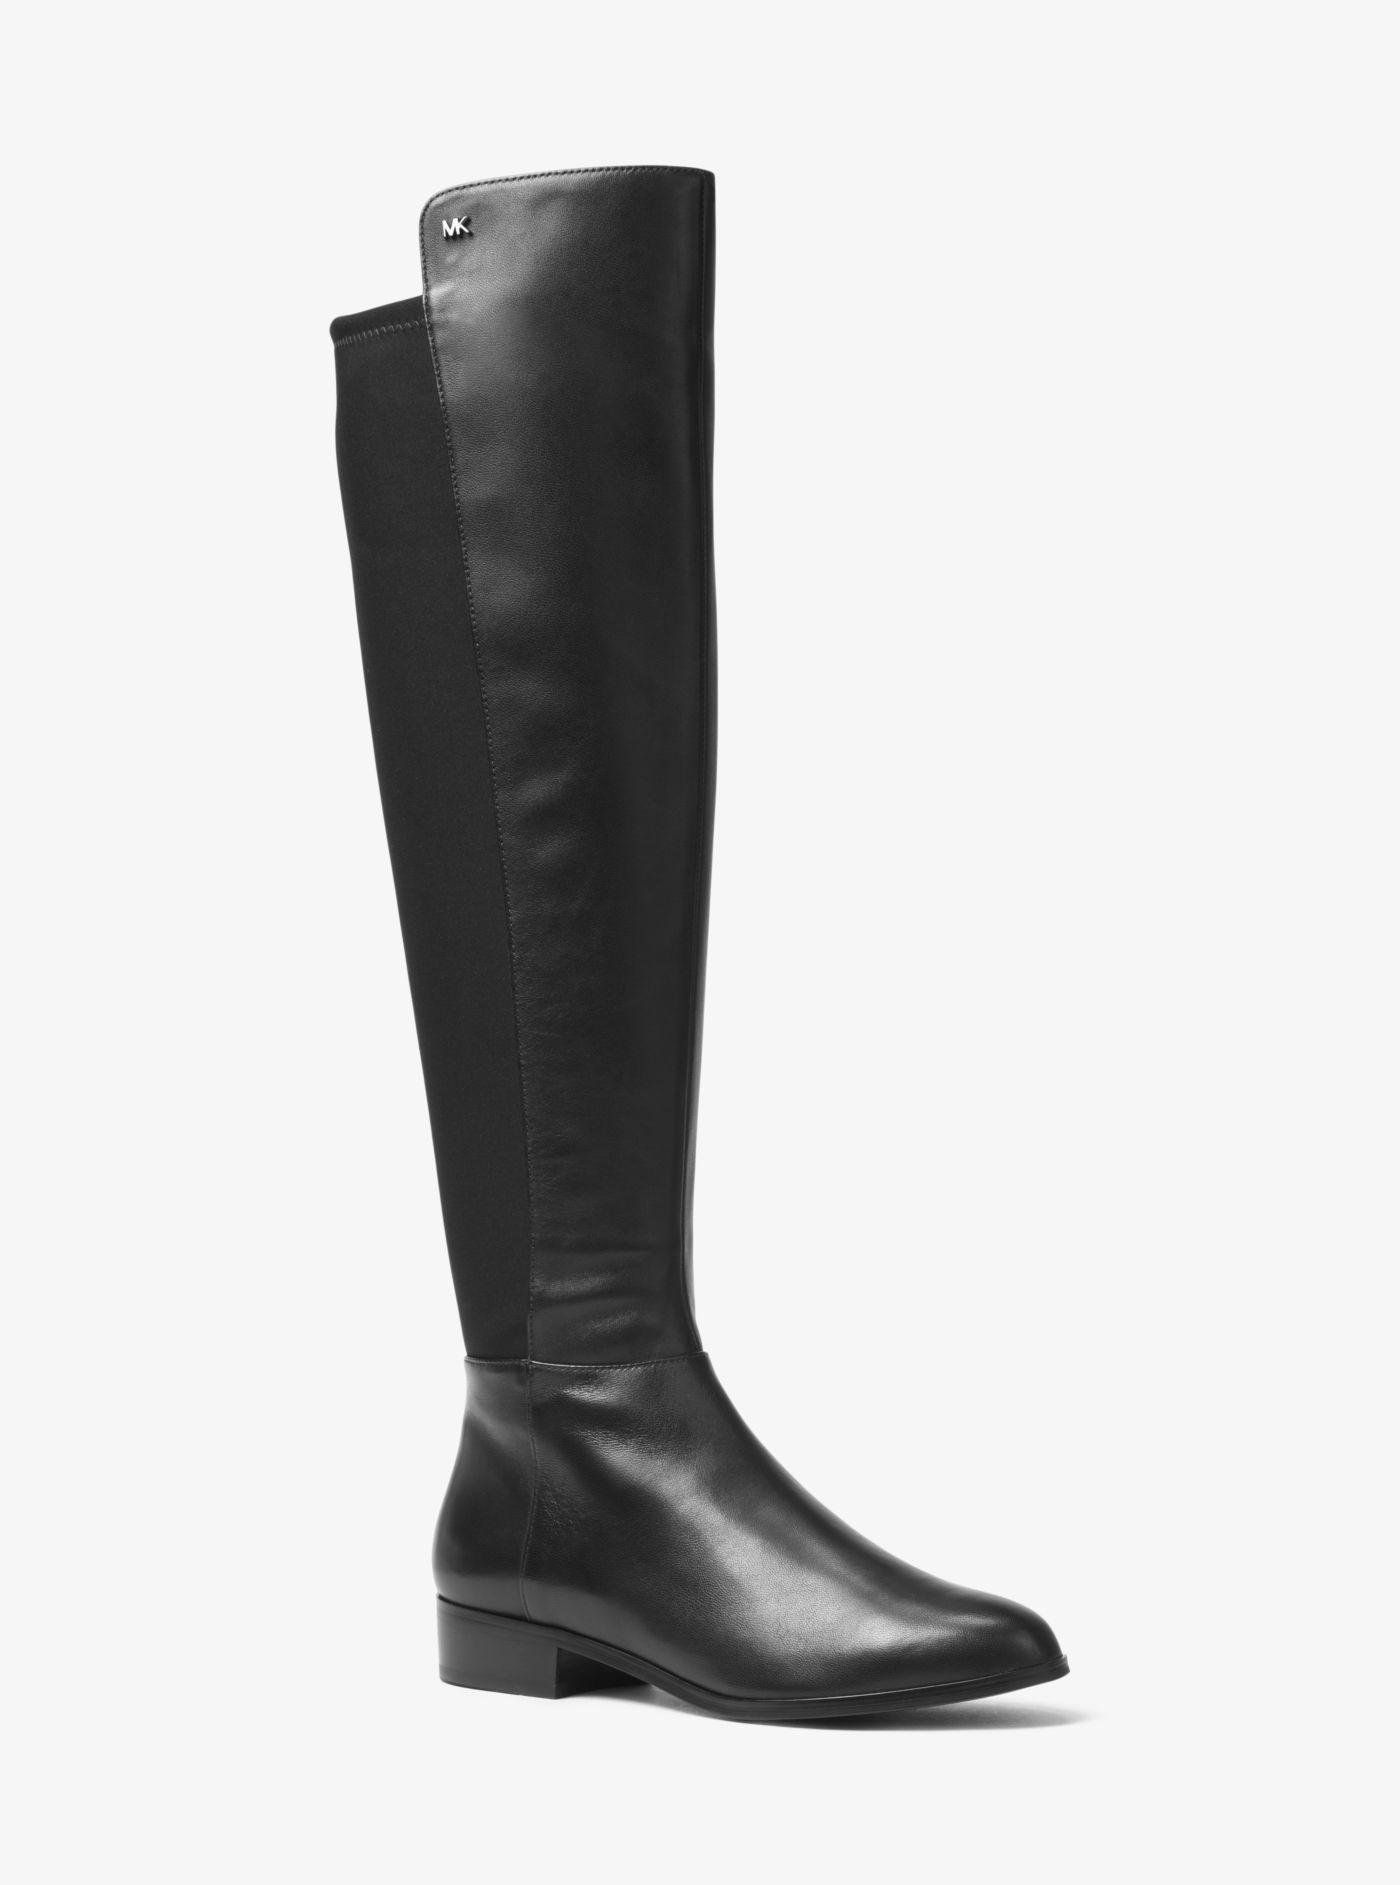 66f4faf95c11 Michael Kors Bromley Nappa Leather Boot in Black - Lyst